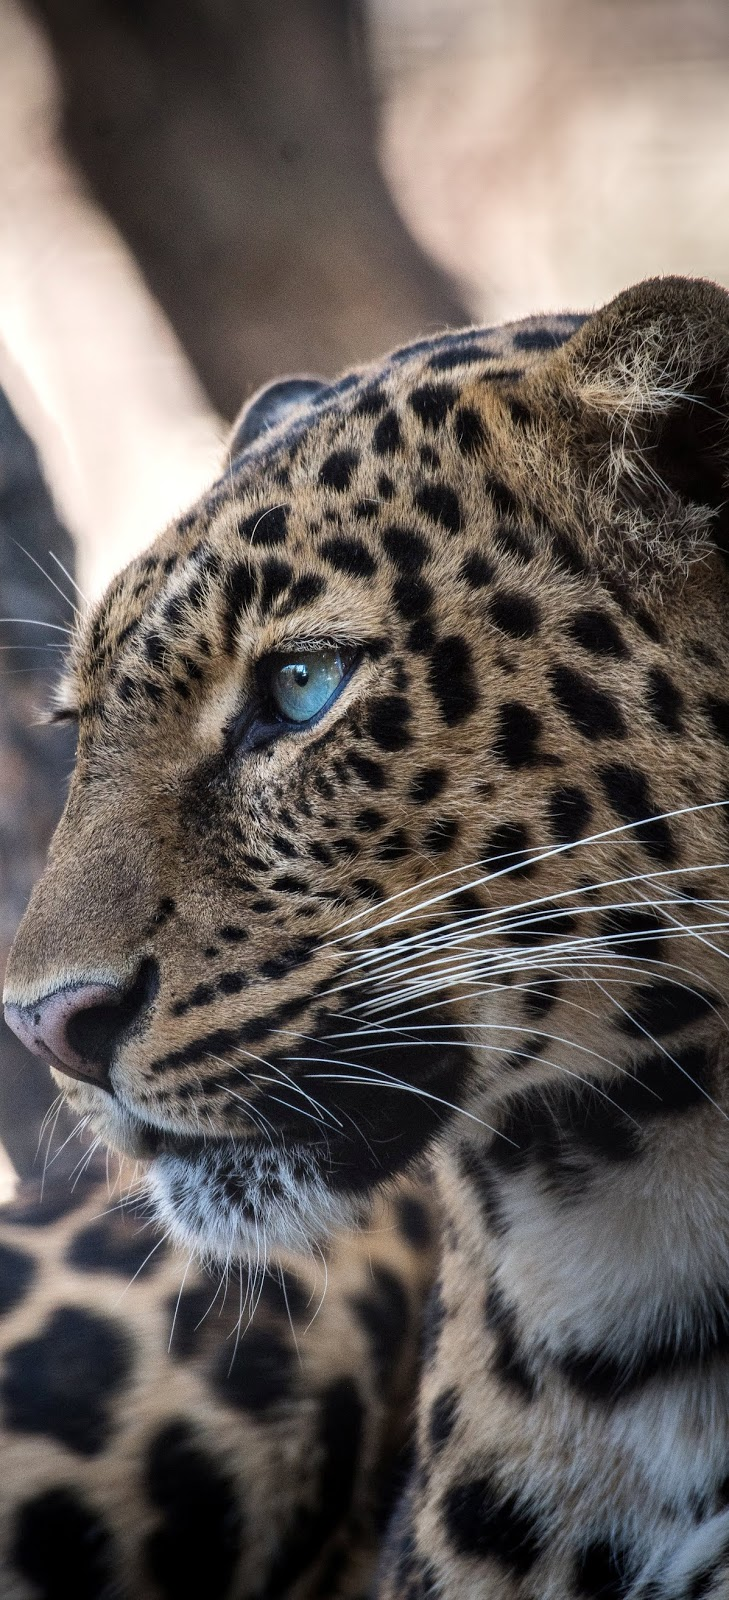 A jaguar face portrait.